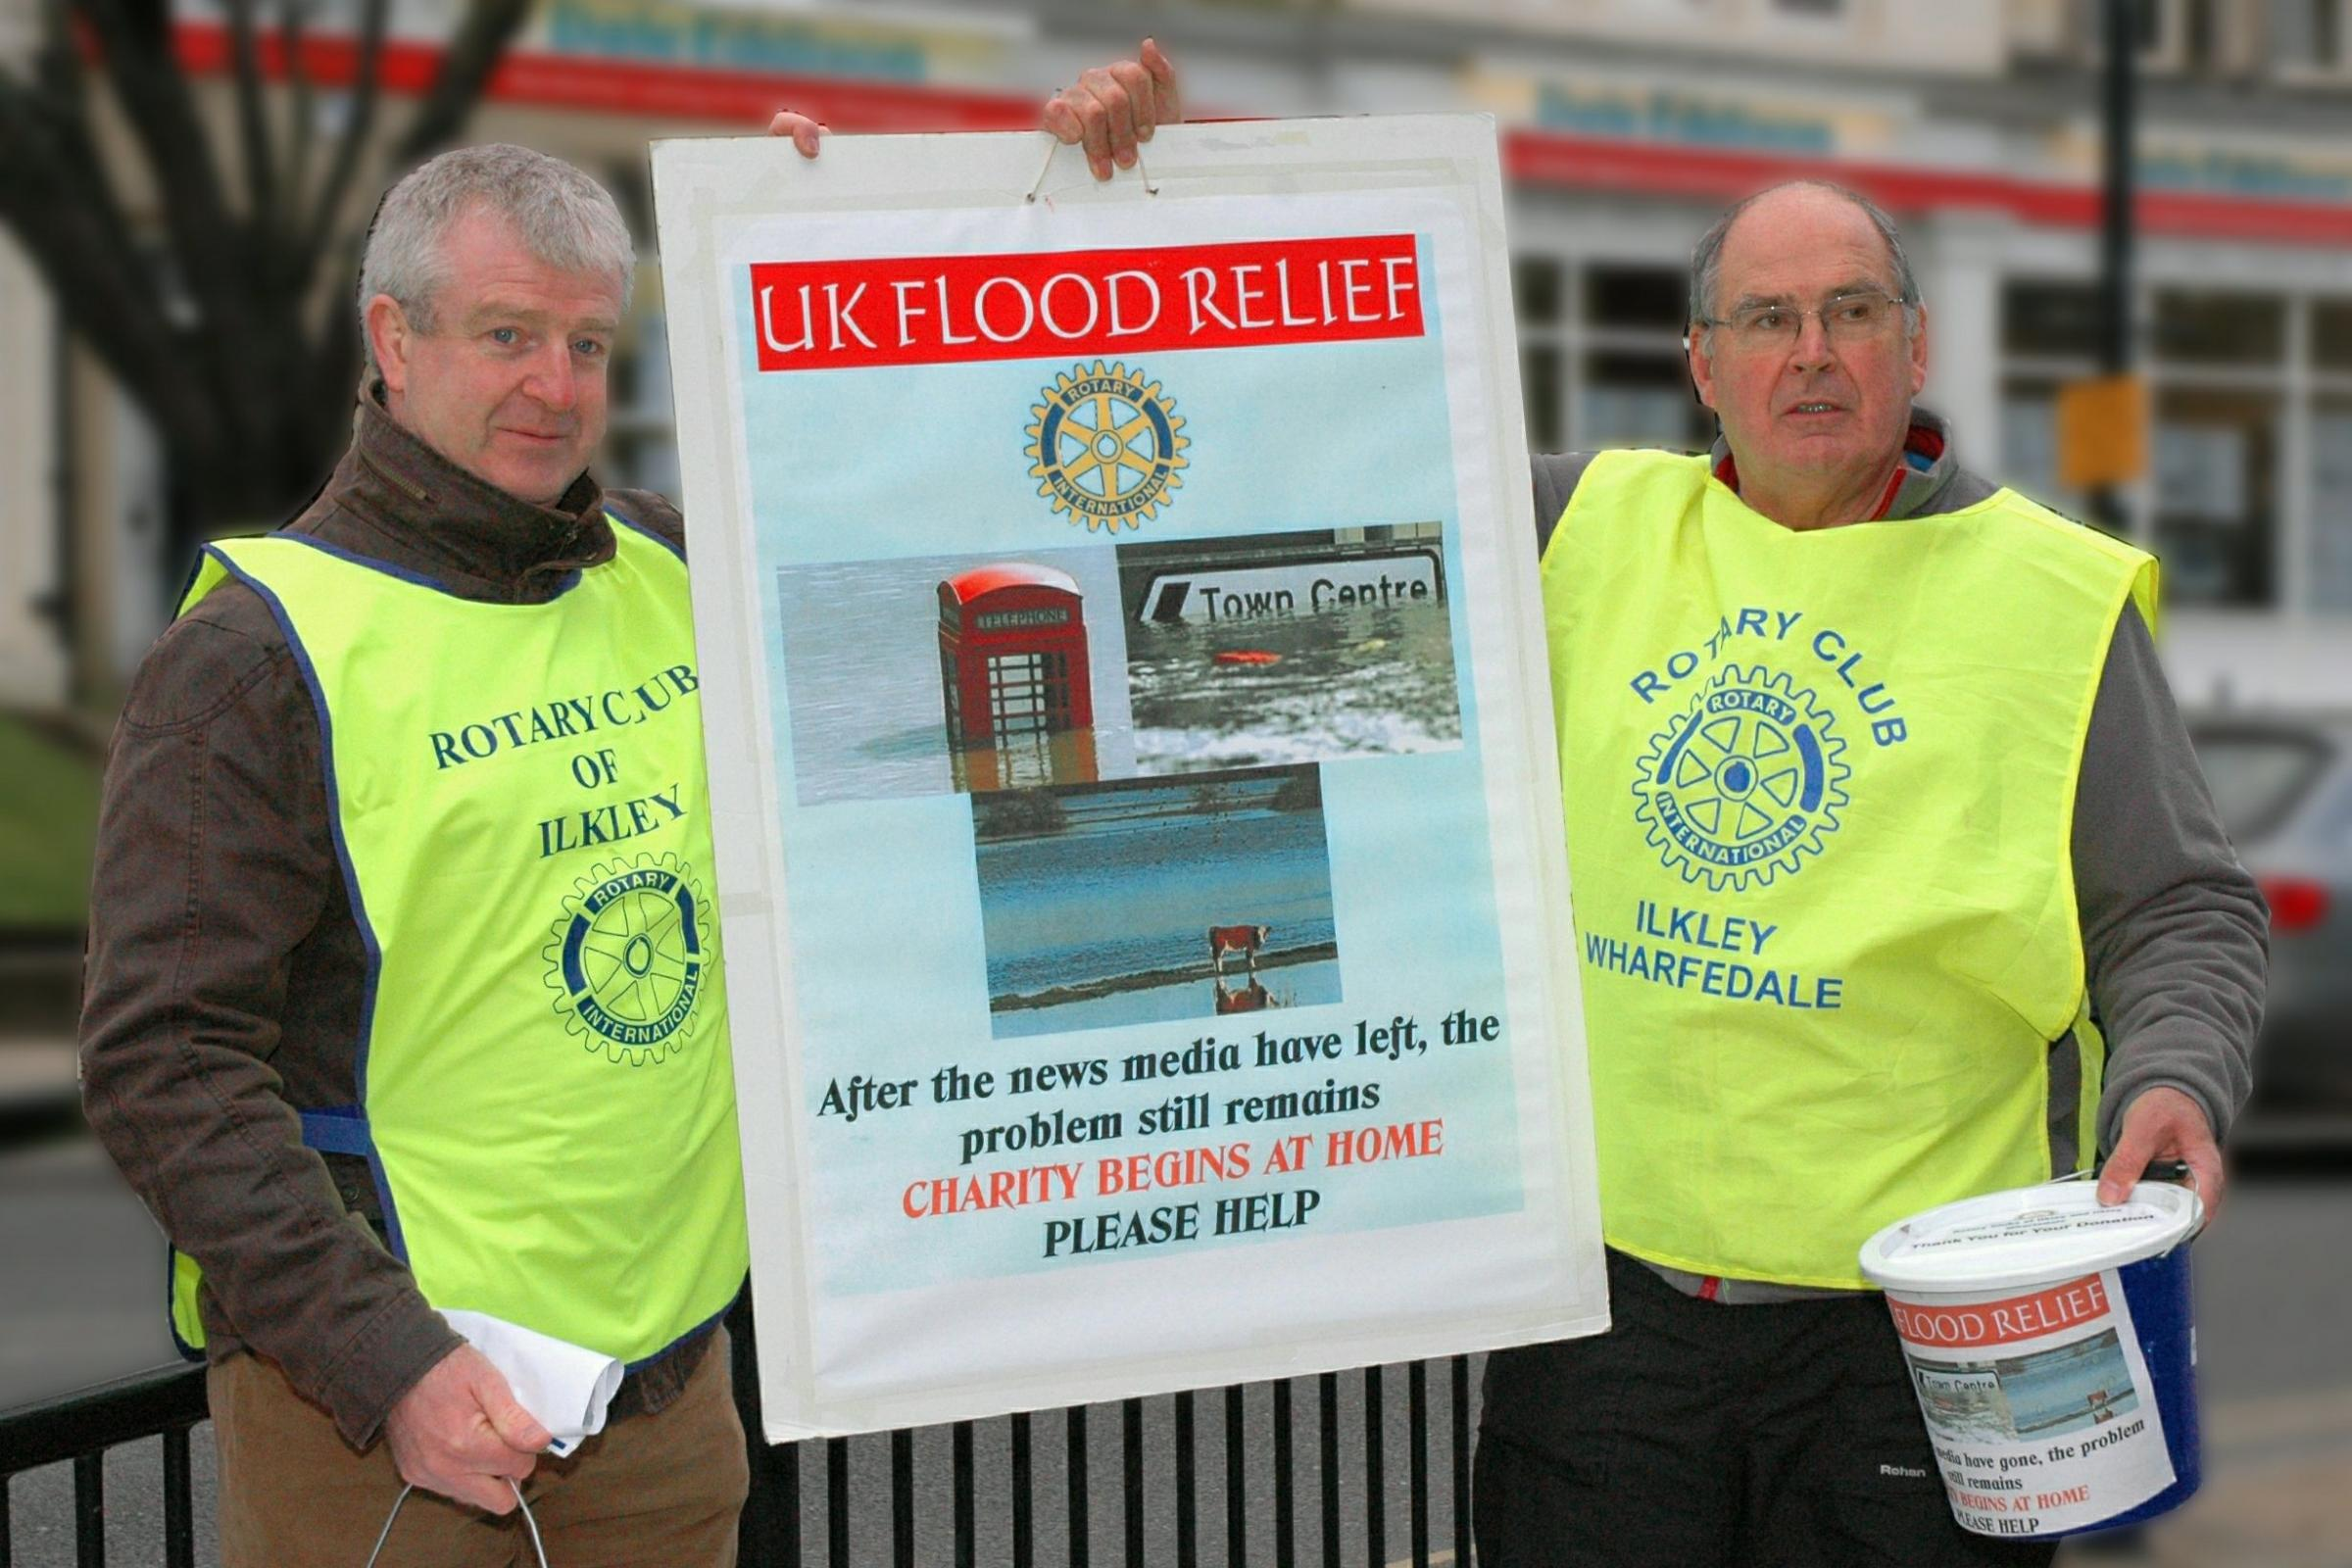 Vernon Young, left, of the Ilkley Rotary Club and Andrew Broughton, of the